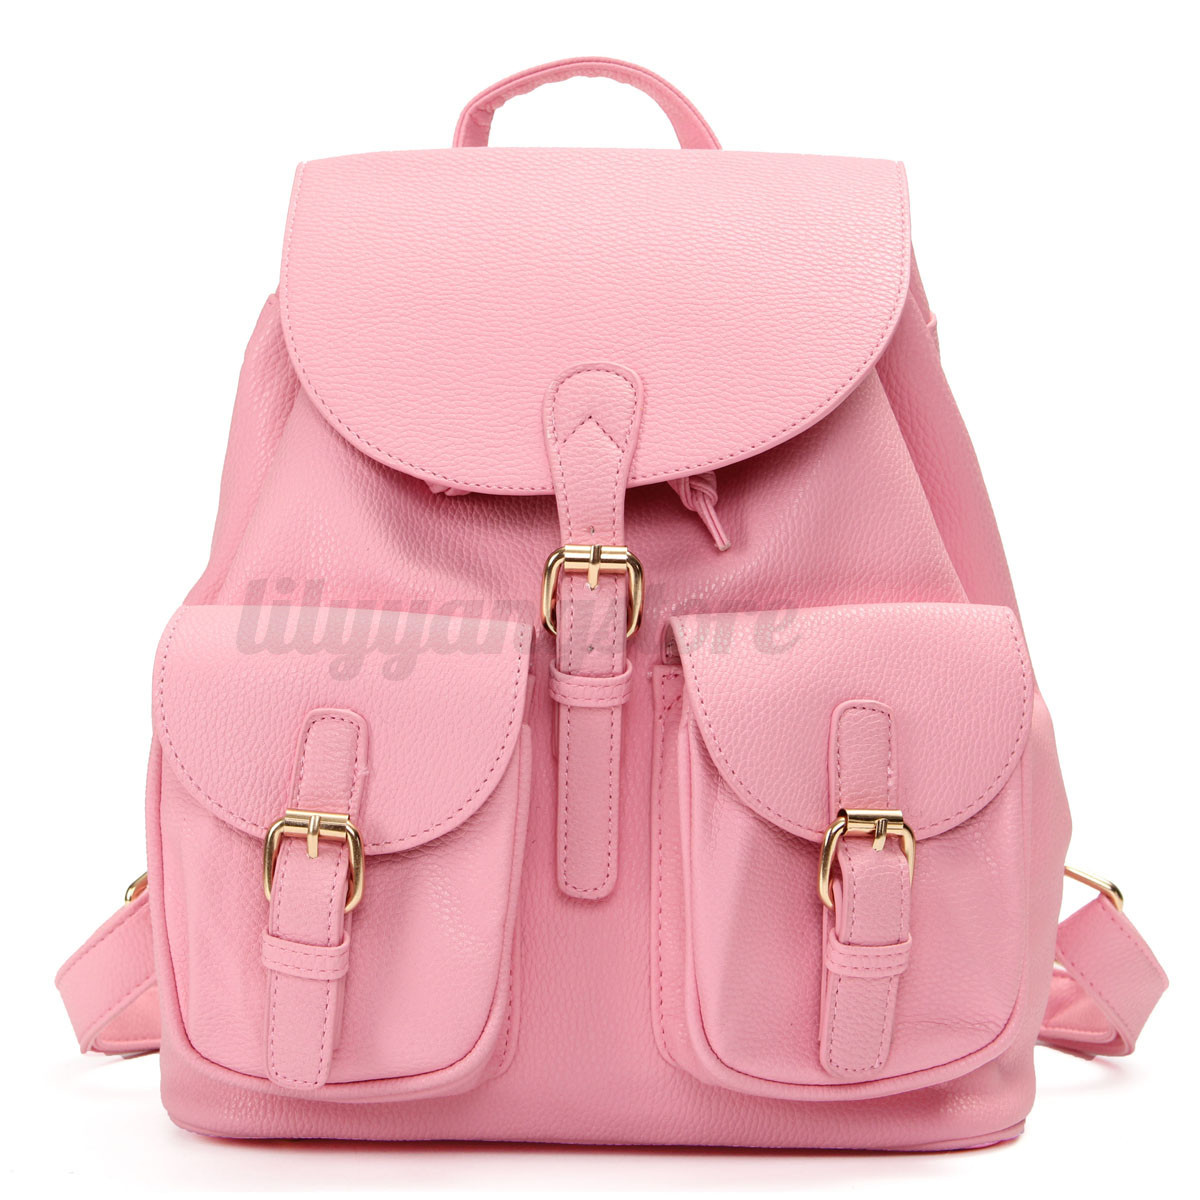 Women Velvet Mini Backpack Girls School Bags Small Travel Handbag Shoulder Bag. $ Free shipping.